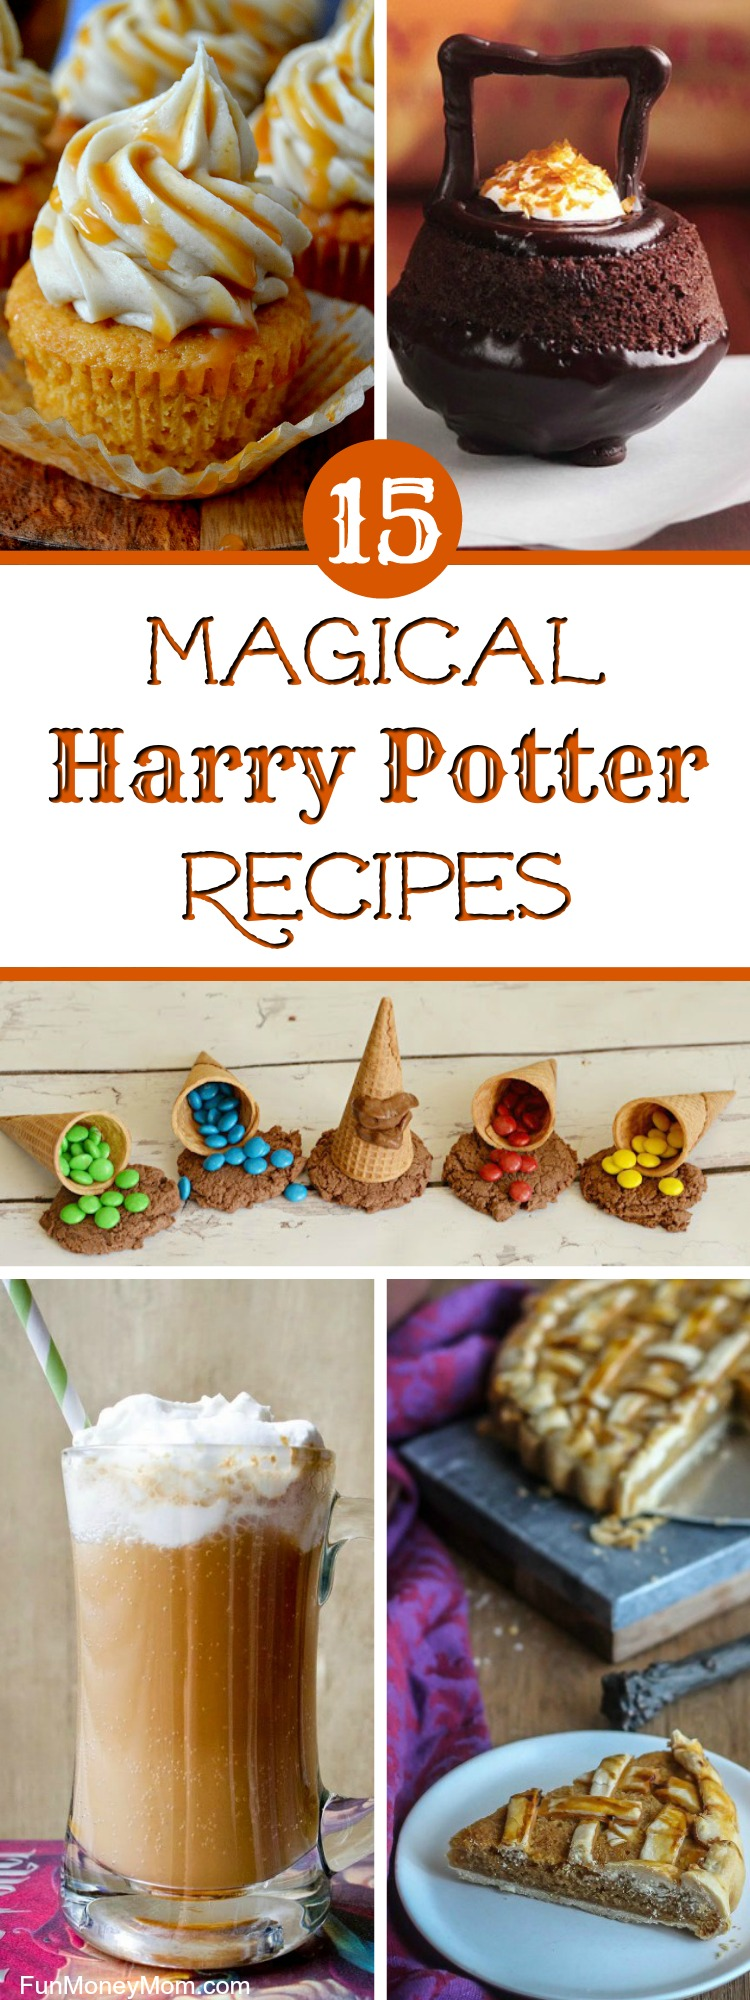 Having a Harry Potter party? You'll want to serve some magical Harry Potter recipes! These Harry Potter inspired foods are perfect for kid's birthday parties or even a Harry Potter movie night. From Butterbeer, Cauldron Cakes, Acid Pops and more, your little wizards will have everything they need for the perfect Harry Potter birthday!